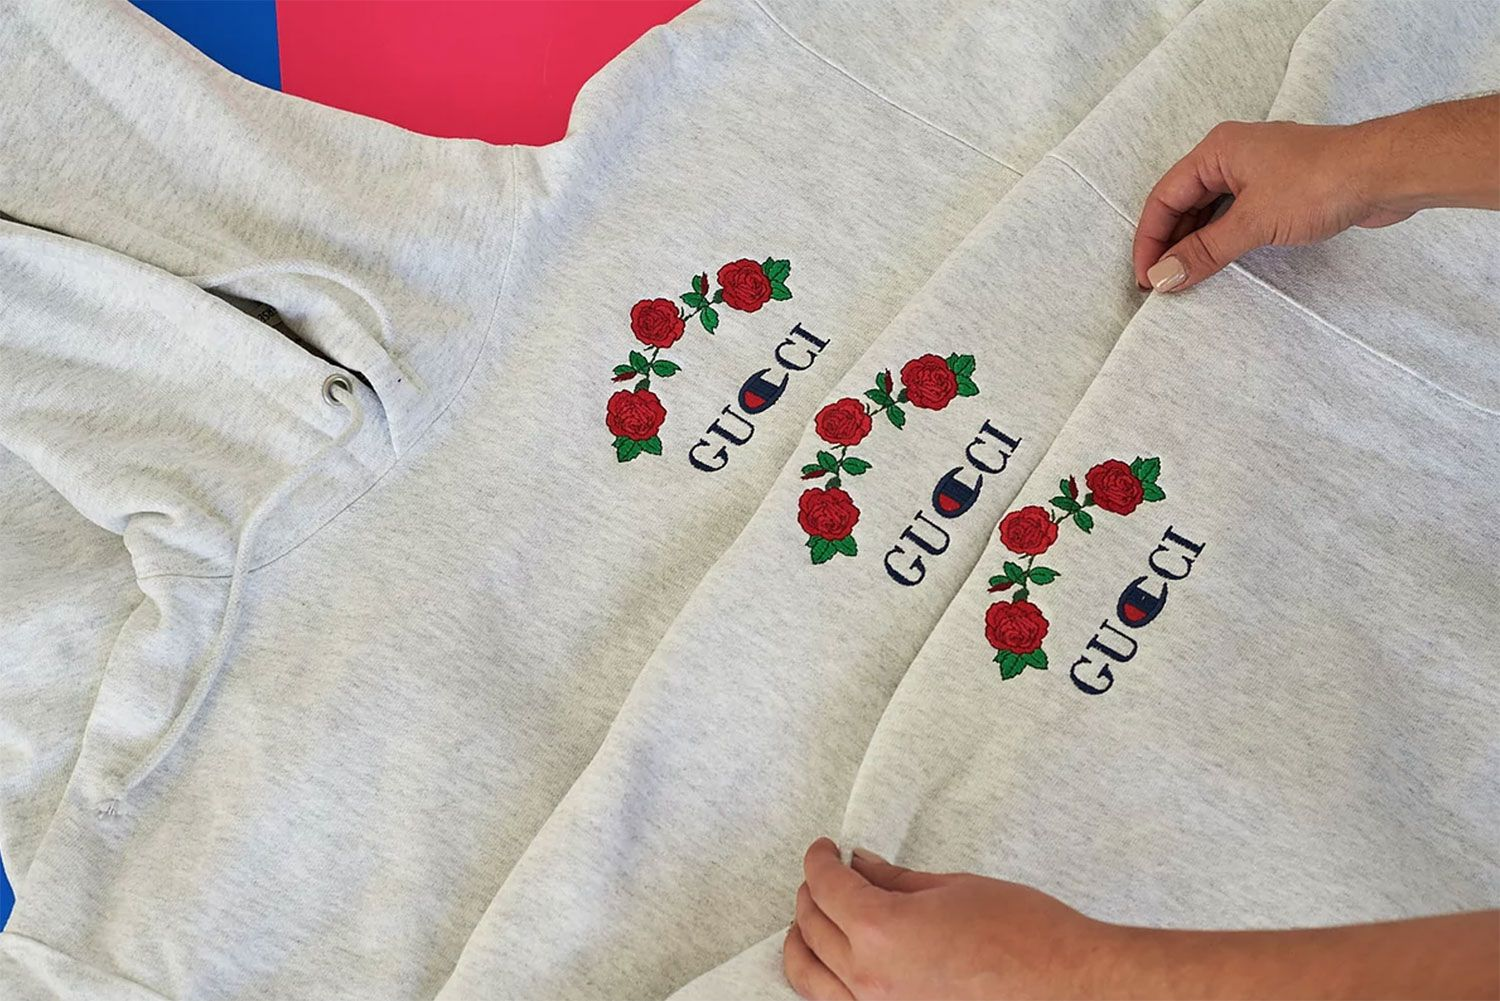 09844c2e0d0 Ava Nirui Finally Released Her Much Hyped GUCCI x Champion Bootleg Hoodie   thatdope  sneakers  luxury  dope  fashion  trending